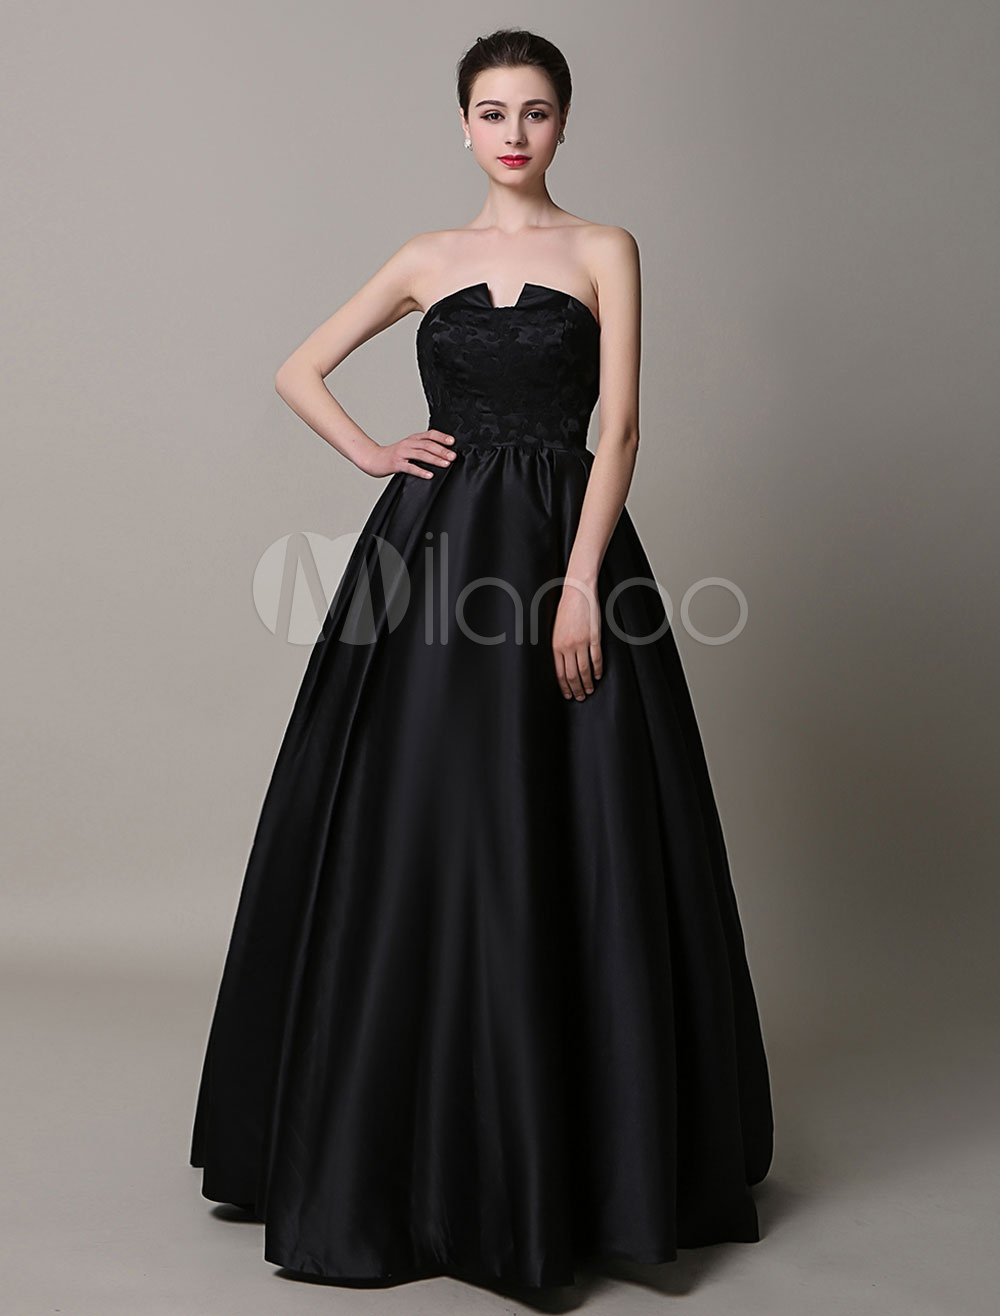 Black Strapless Backless A-Line Satin Prom Dress